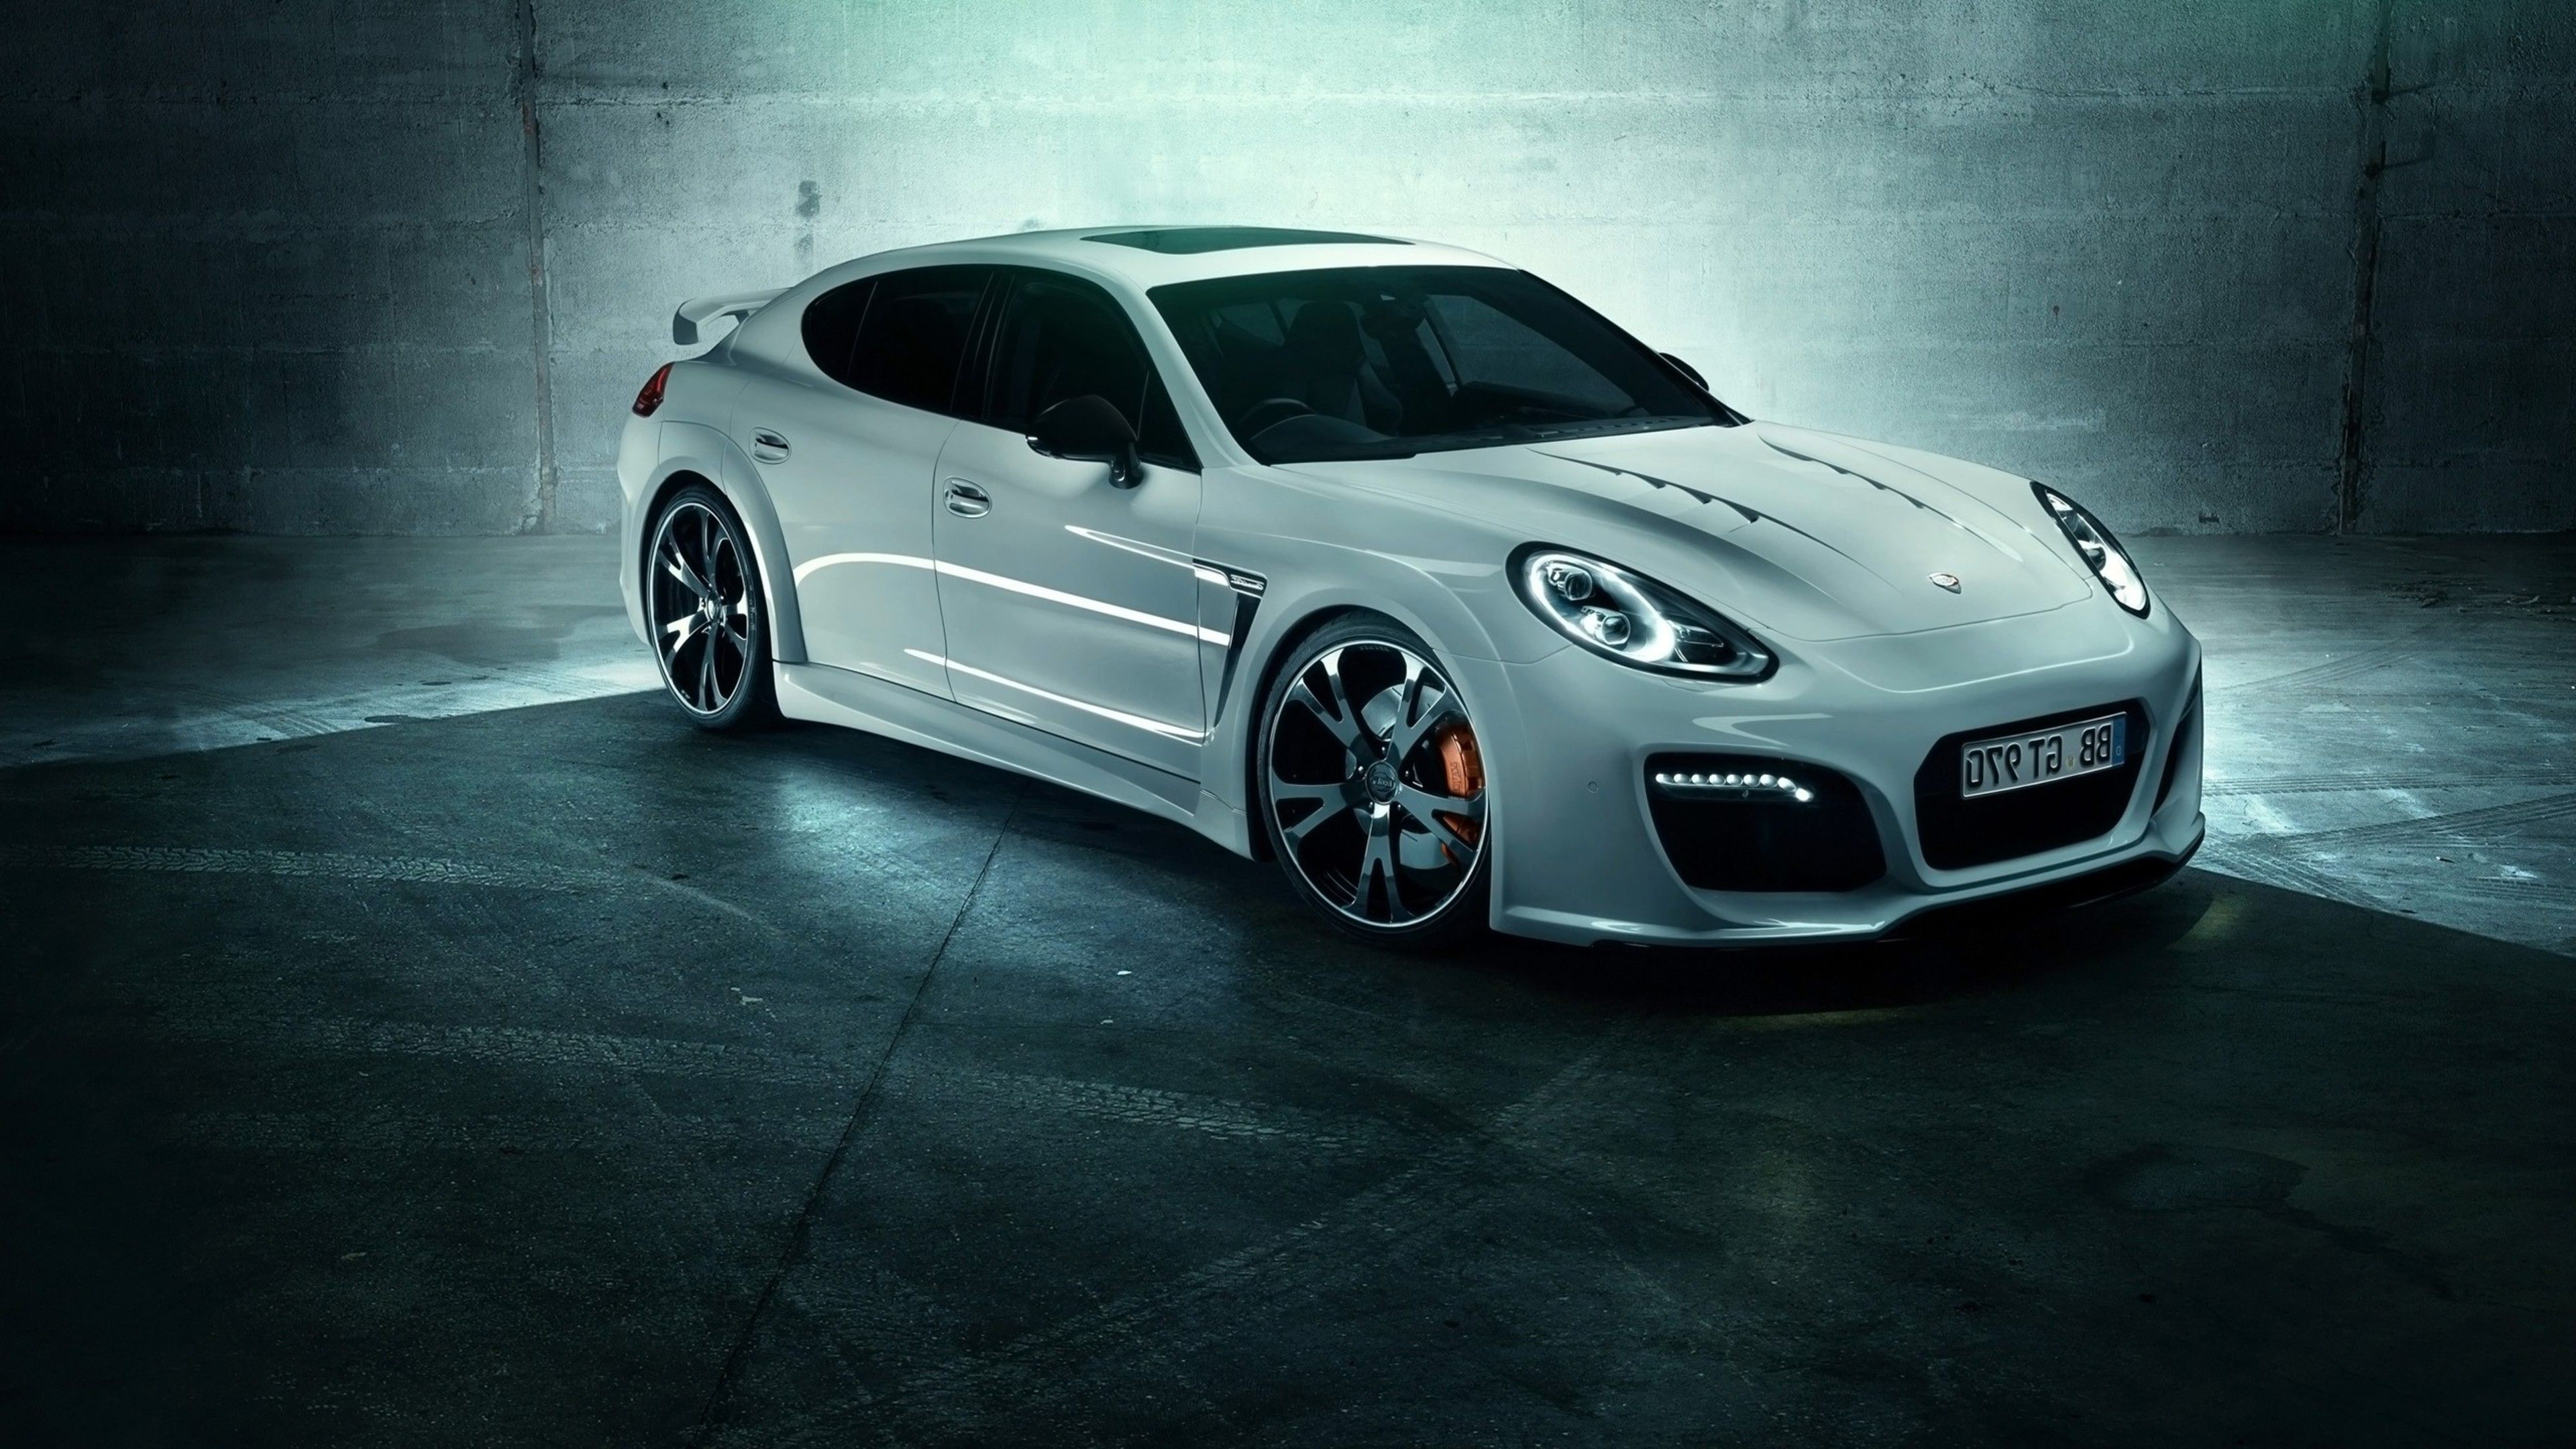 Porsche Panamera S Black White Stock Photo